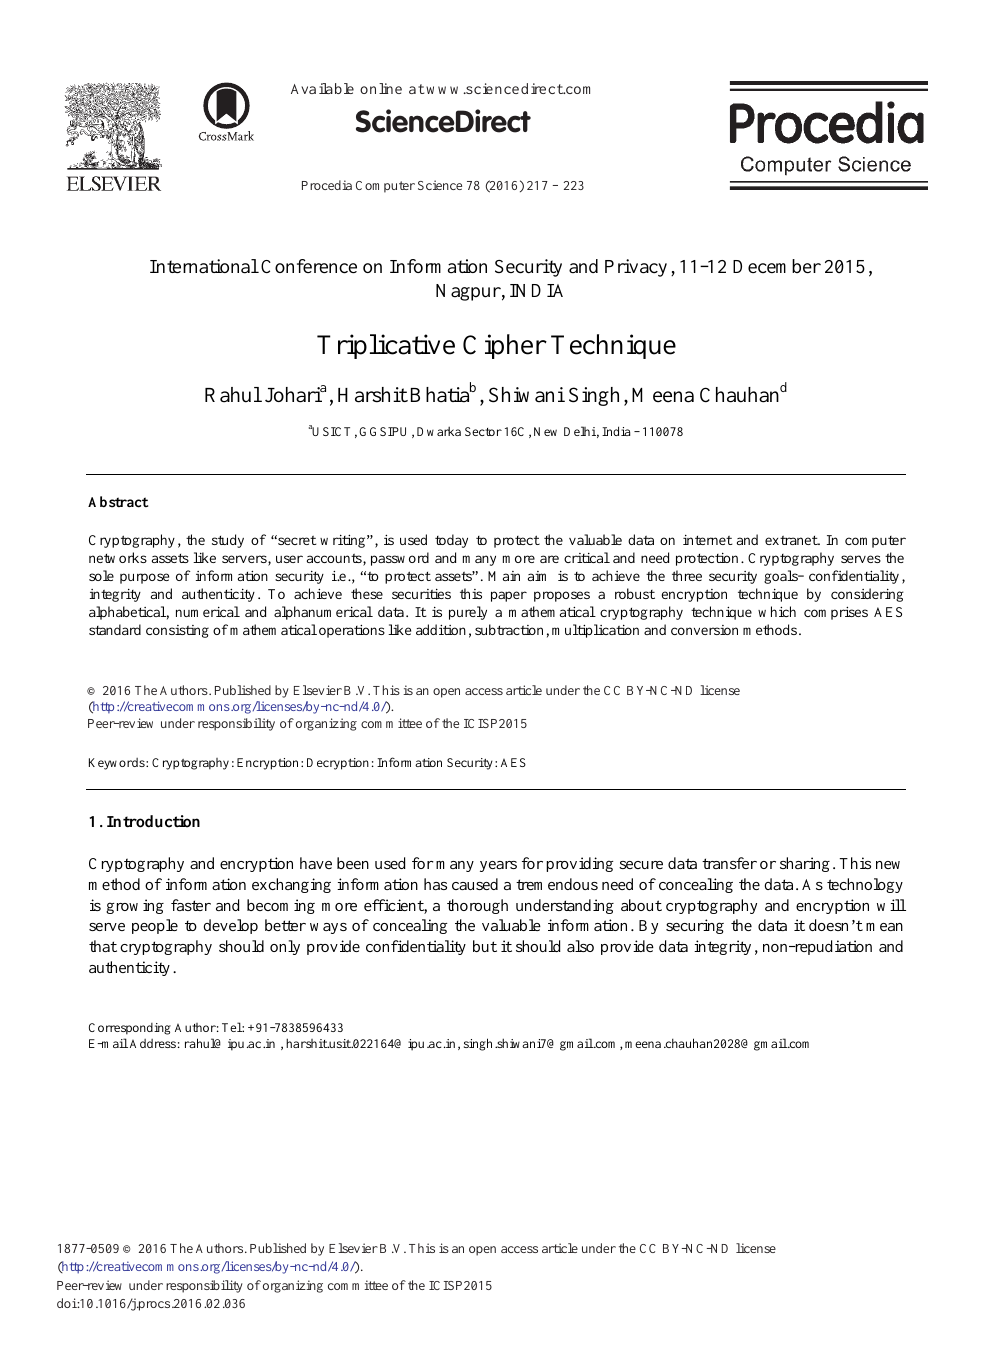 Triplicative Cipher Technique – topic of research paper in